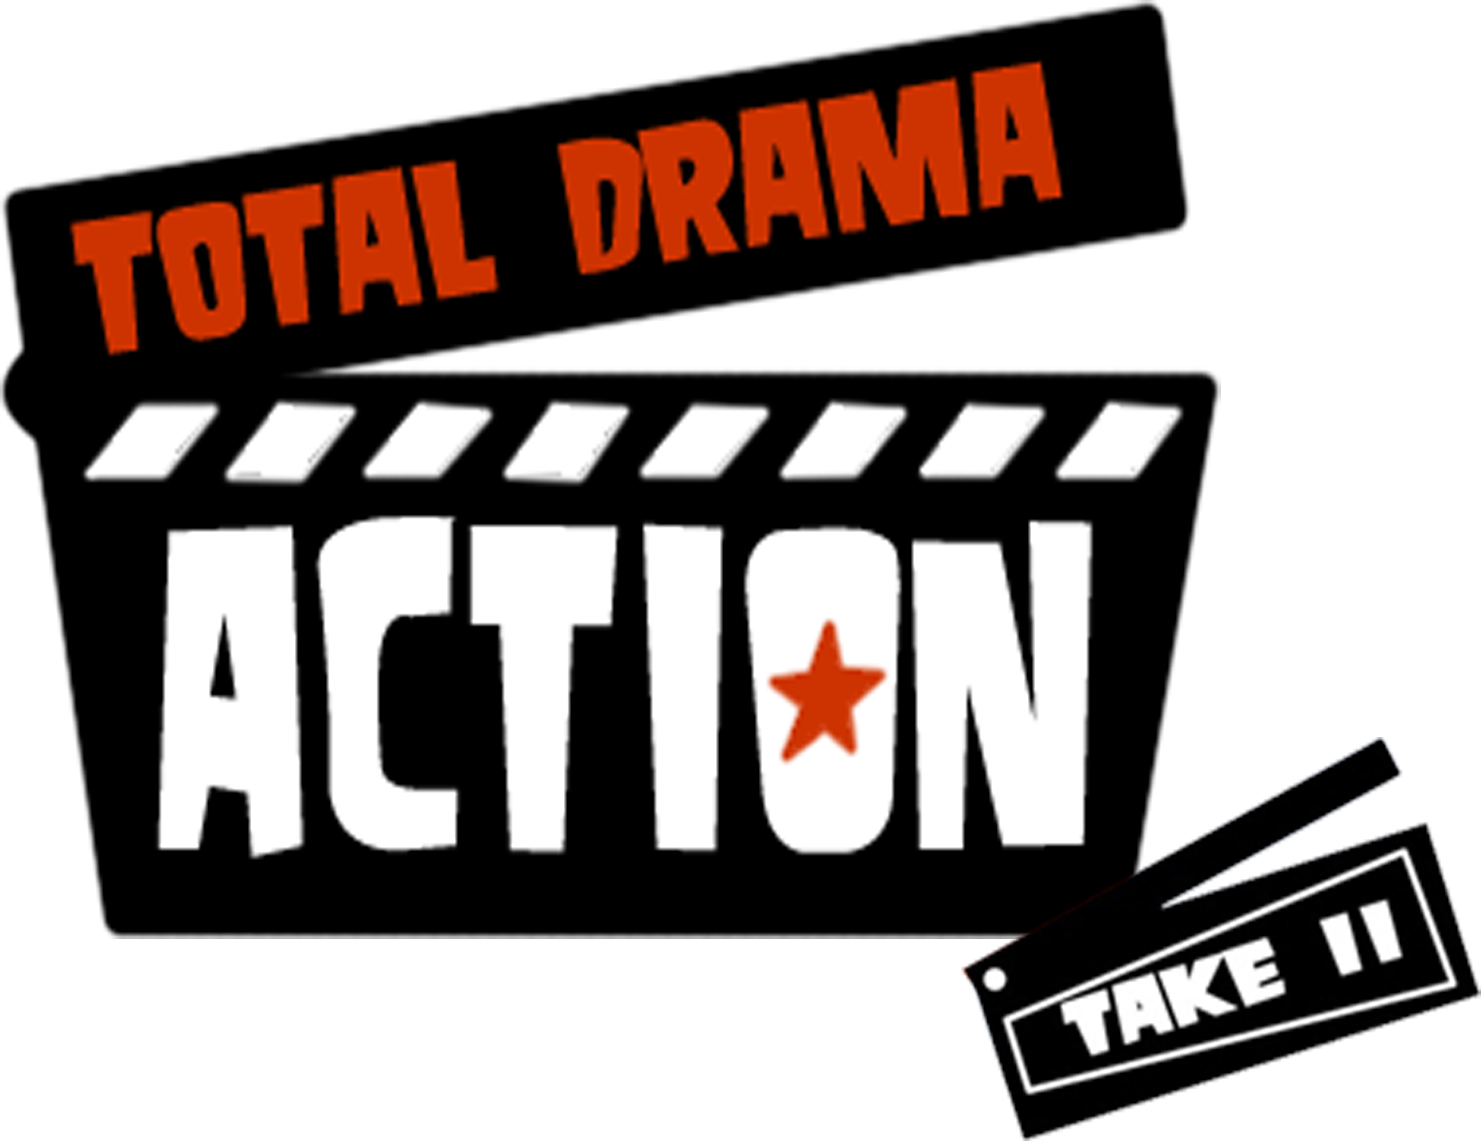 Action clipart action genre. Total drama take ii